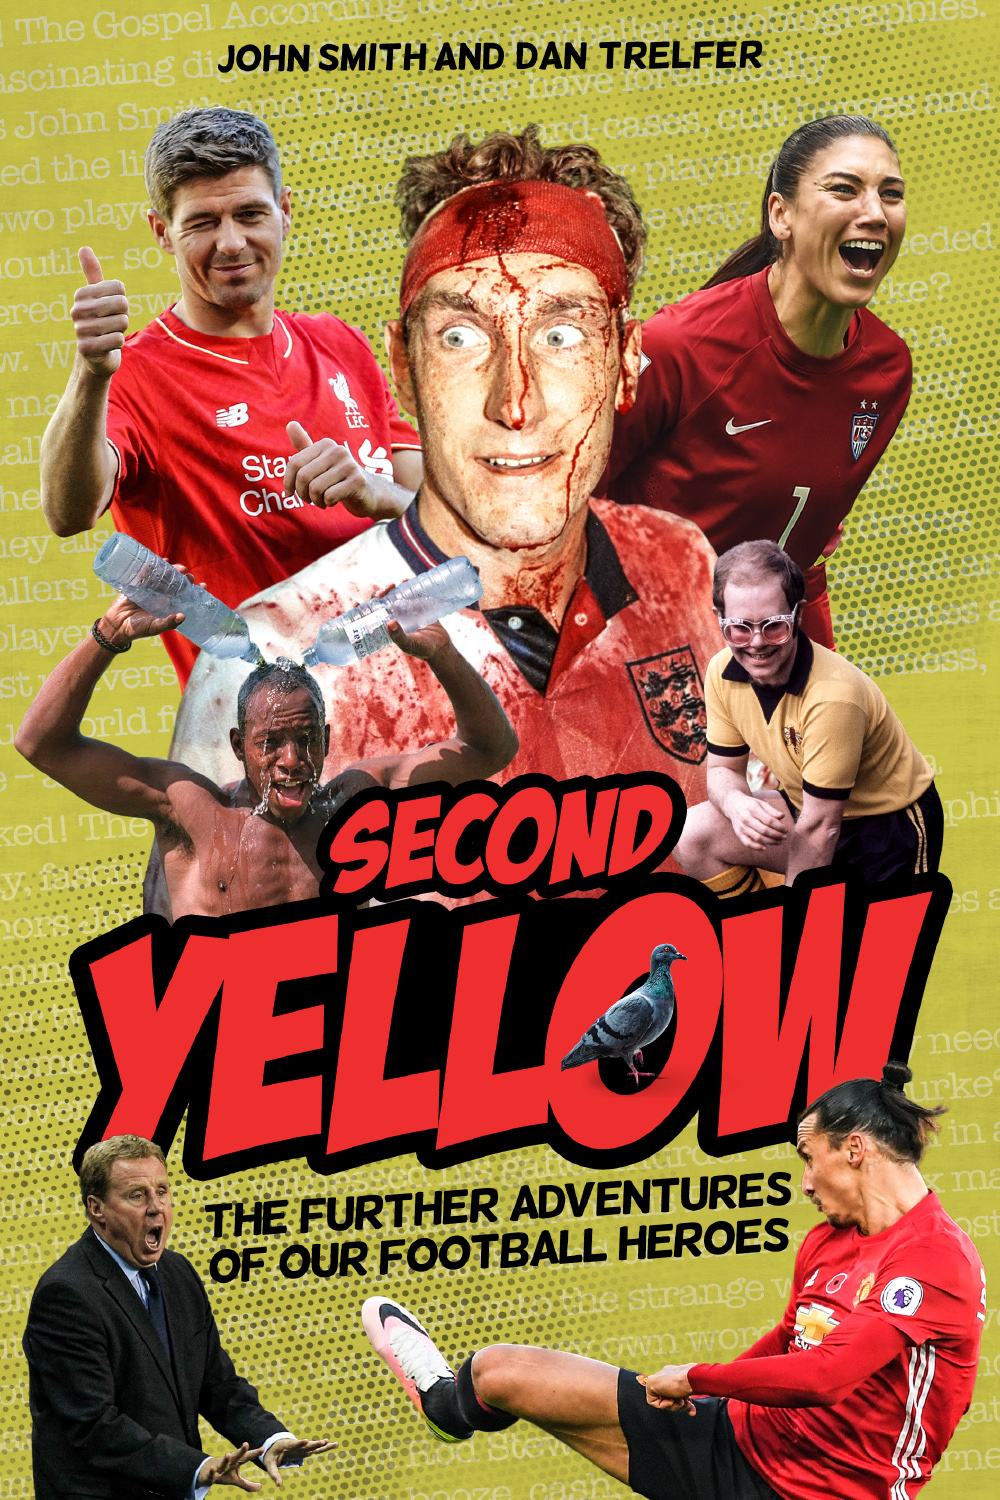 Second Yellow